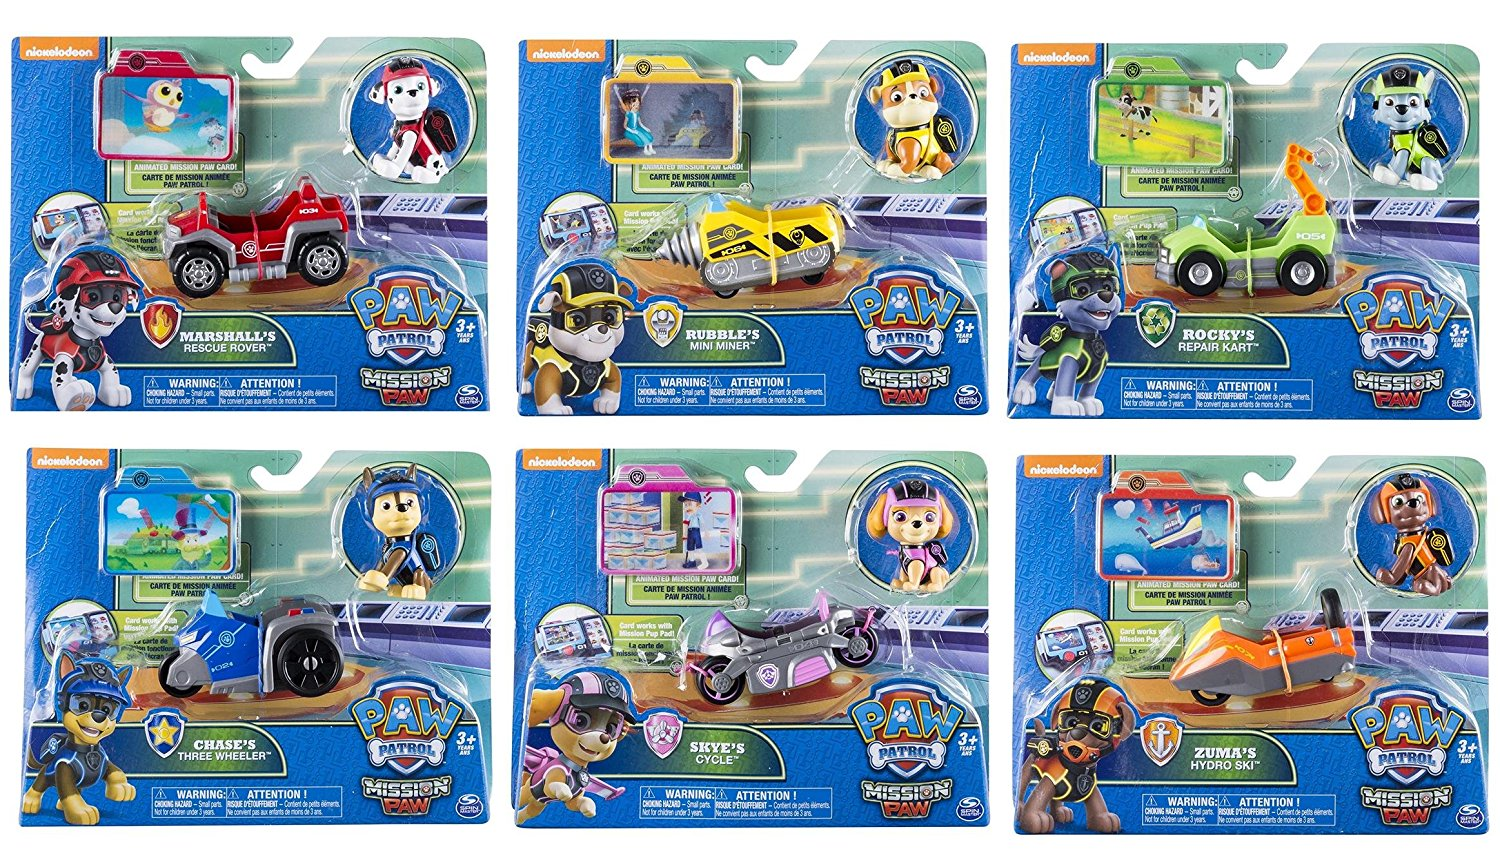 Great These Mini Vehicles Are Must Have. Not Only Do You Have The Paw Patrol  Mission Paw Mini Vehicles, Which Not Only Can Be Used On Their Own, But  They Are The ...